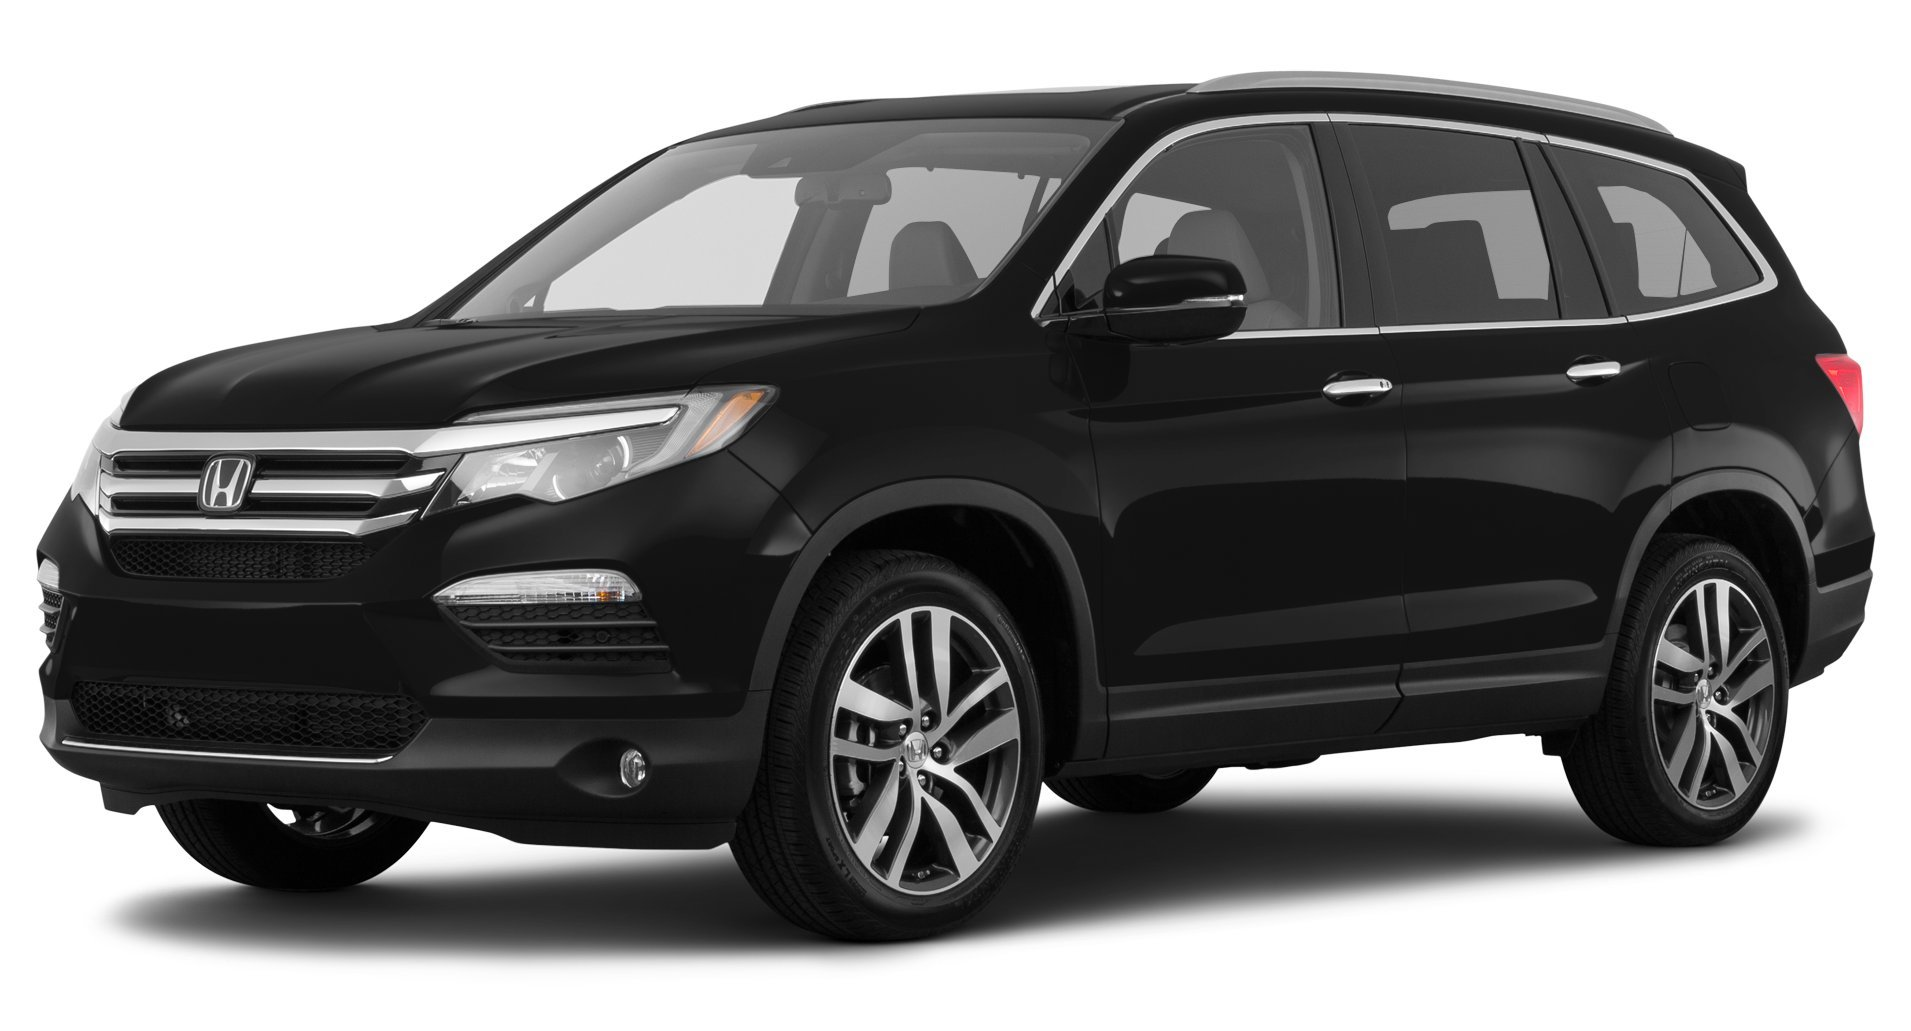 2017 toyota highlander hybrid le v6 all wheel drive gs alumina jade metallic. Black Bedroom Furniture Sets. Home Design Ideas